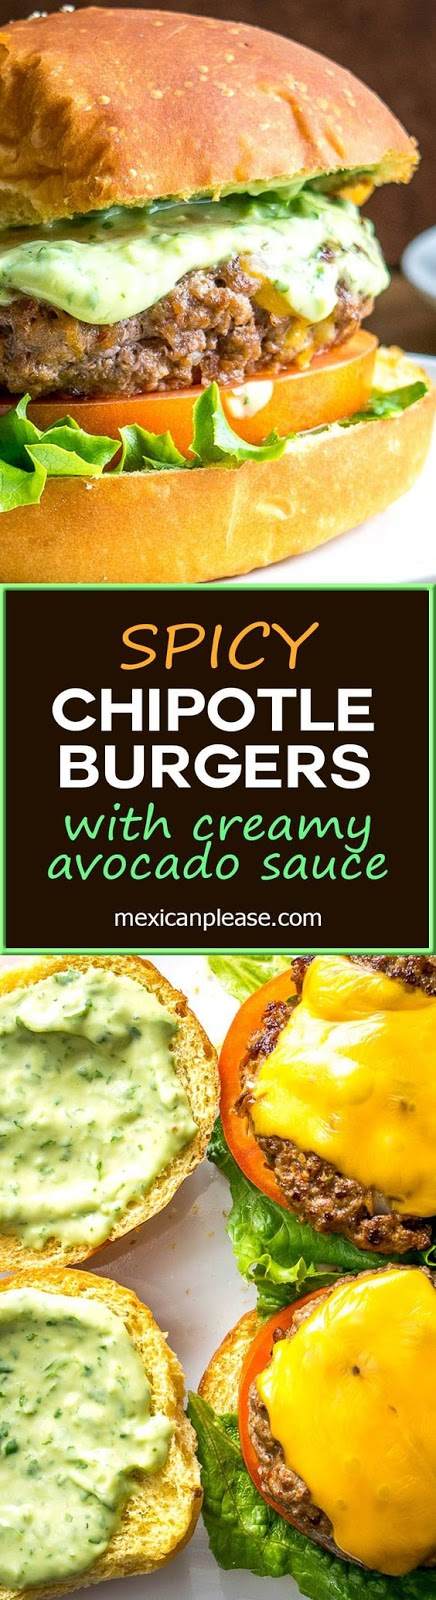 Chipotle Burgers with Creamy Avocado Sauce